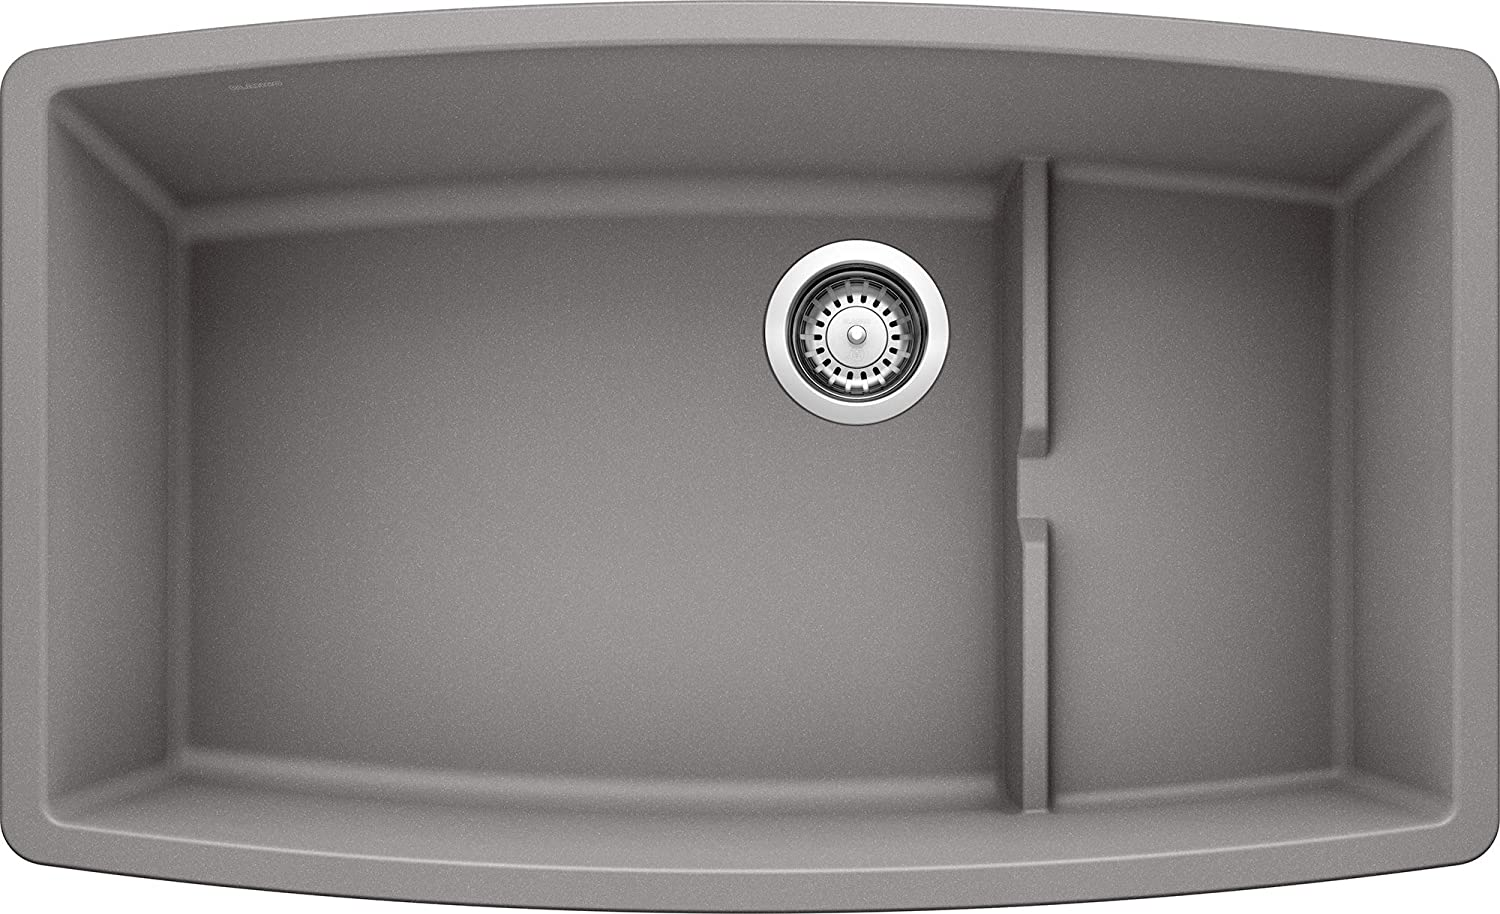 BLANCO 440067 PERFORMA Cascade SILGRANIT Undermount Single Bowl Kitchen Sink, 80 Granite, Metallic Gray